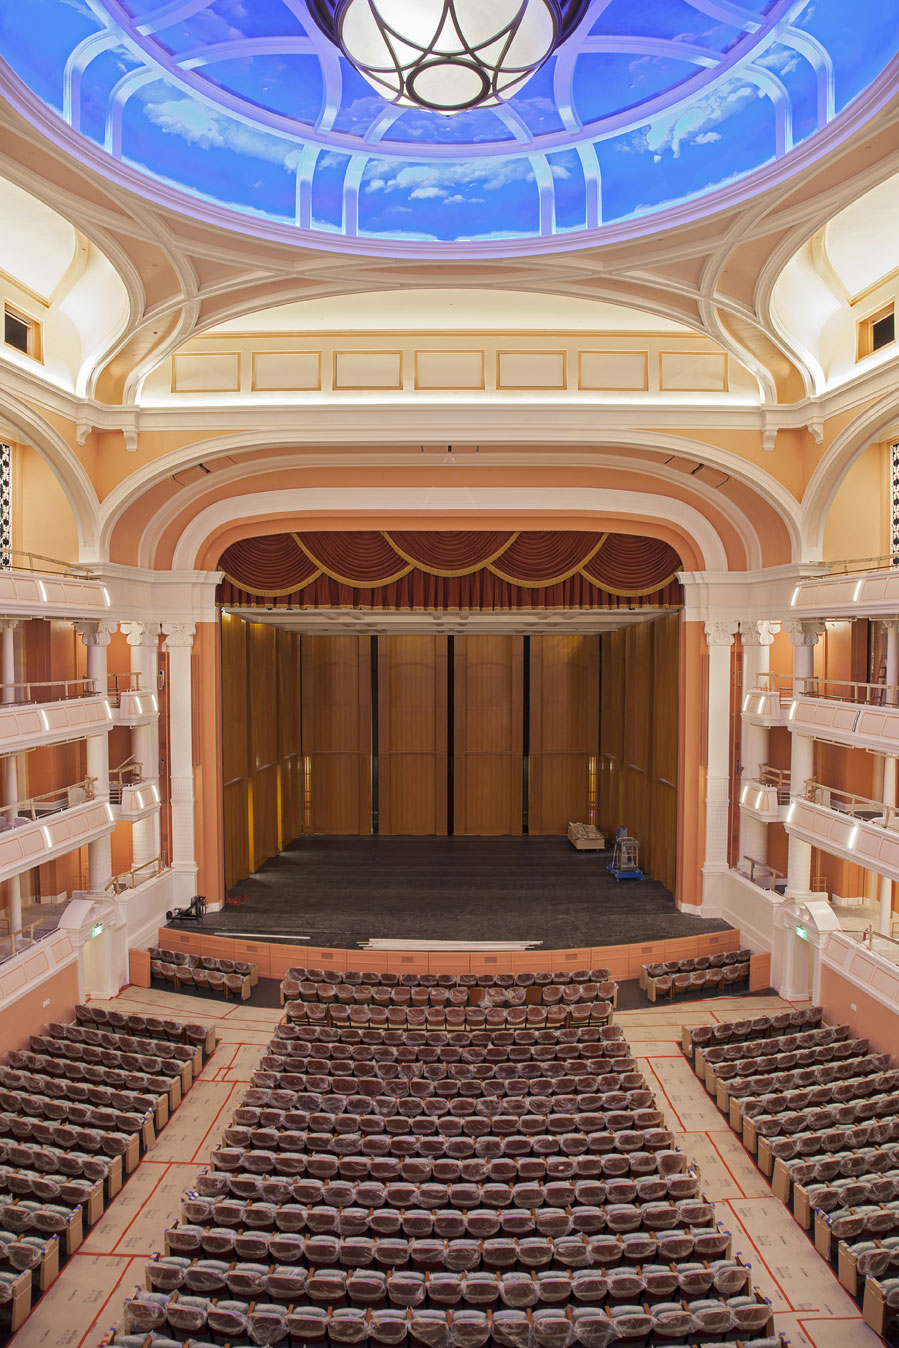 The Performance Hall was designed by world-renowned David M. Schwartz Architects of Washington, D.C., with acoustical engineering by Akustiks, LLC, and theater consultation by Fisher Dachs Associates of New York.